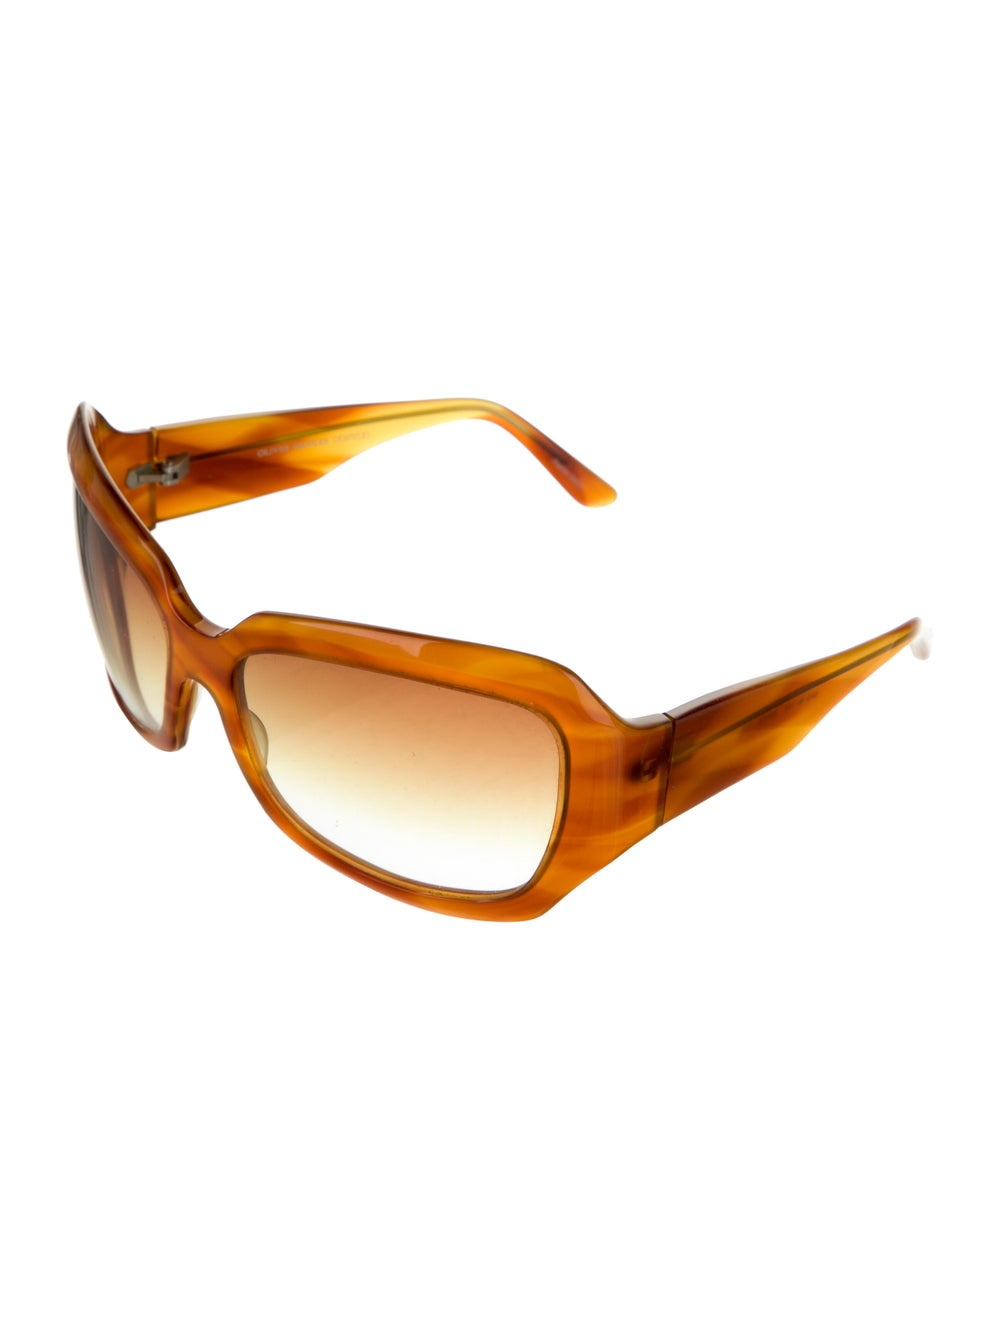 Oliver Peoples Athena Acetate Sunglasses Brown - image 2